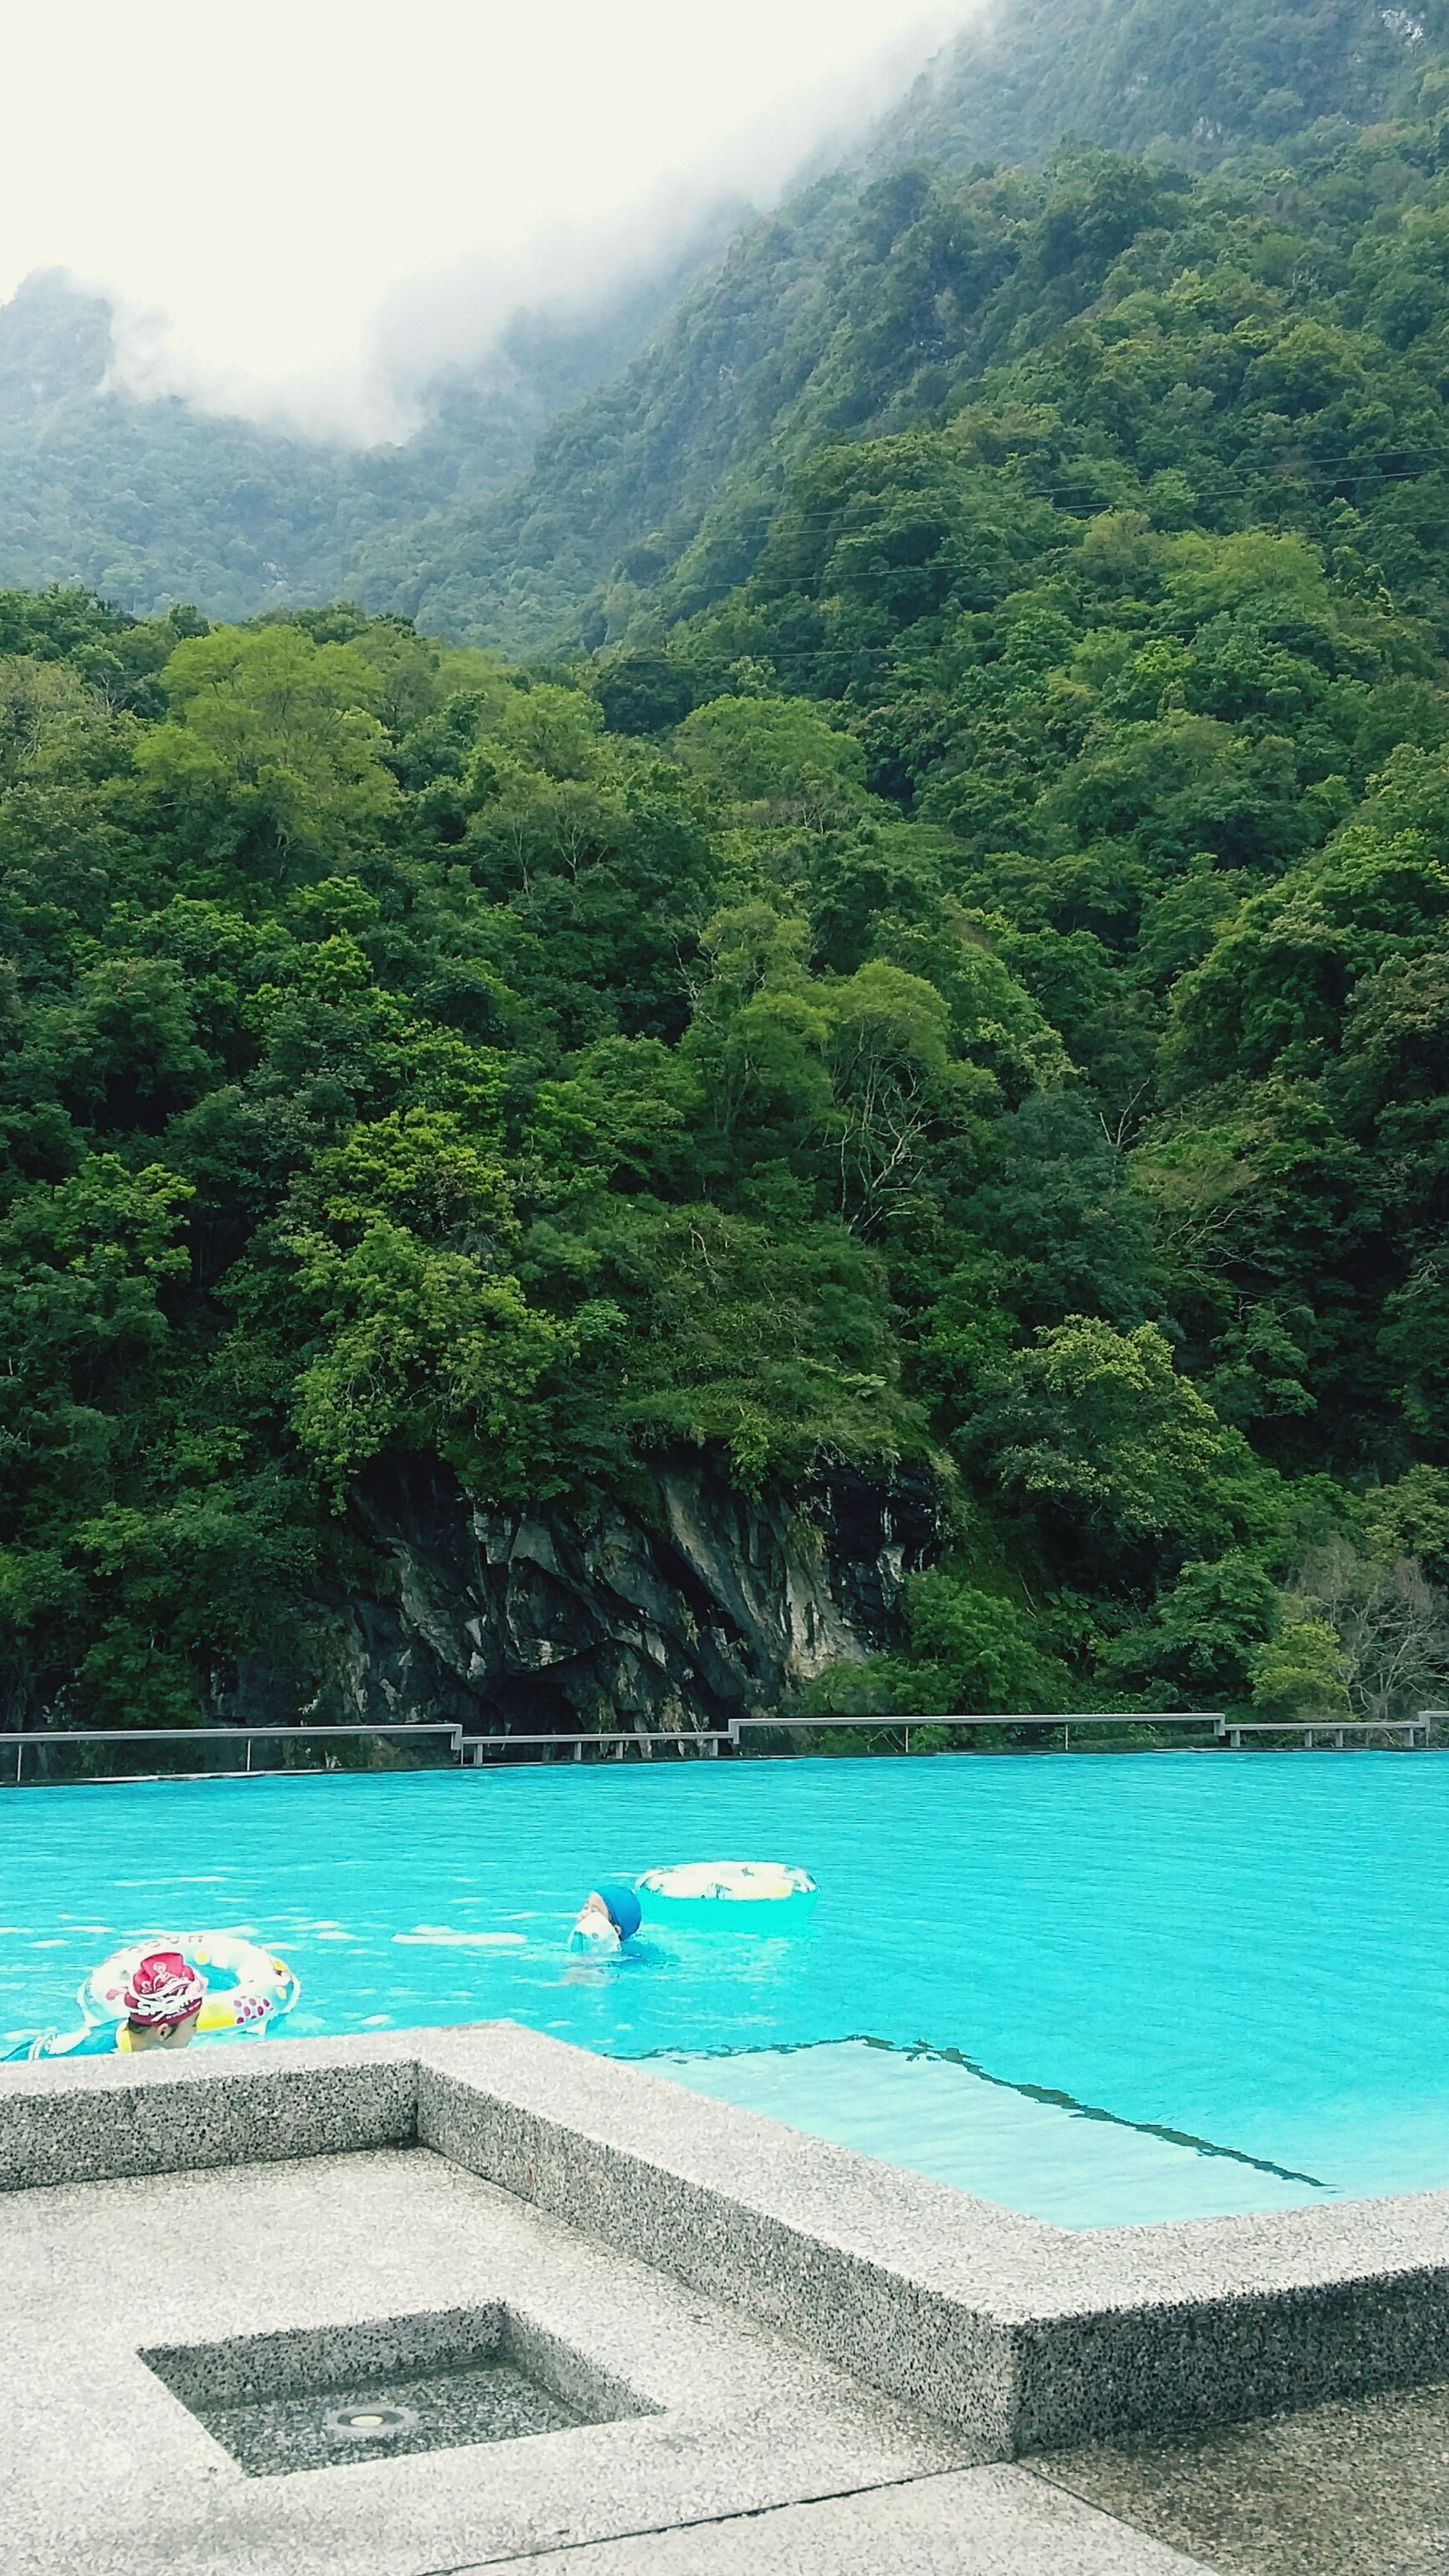 water, swimming pool, tree, green color, no people, tranquil scene, scenics, tranquility, day, nature, beauty in nature, outdoors, sea, sky